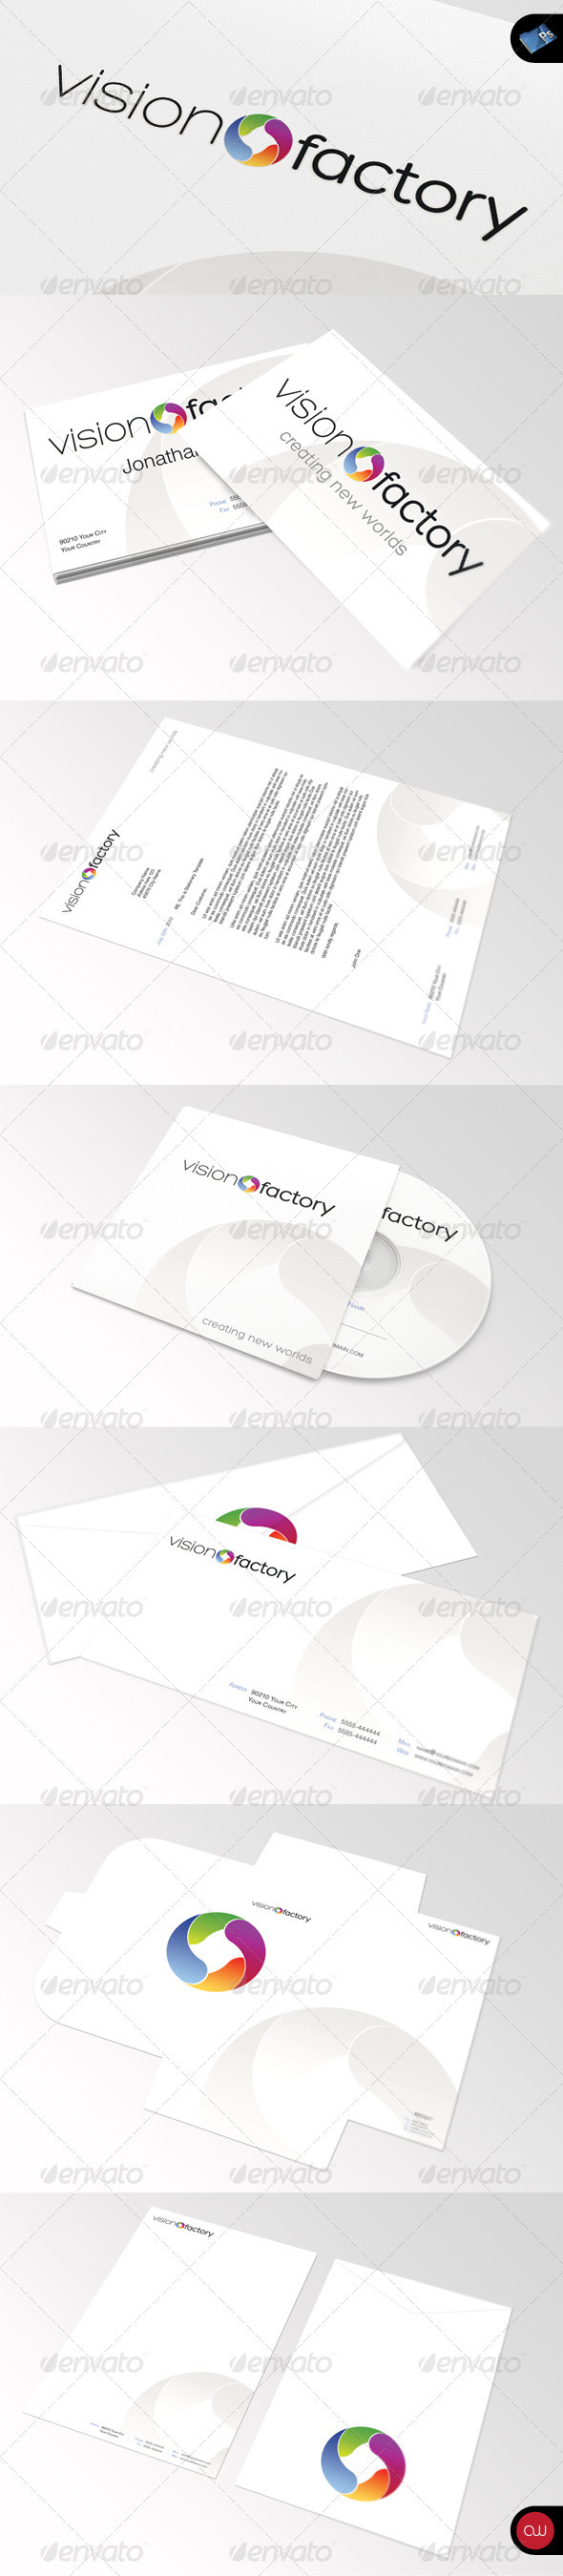 Stationary & Identity - Vision Factory - Stationery Print Templates